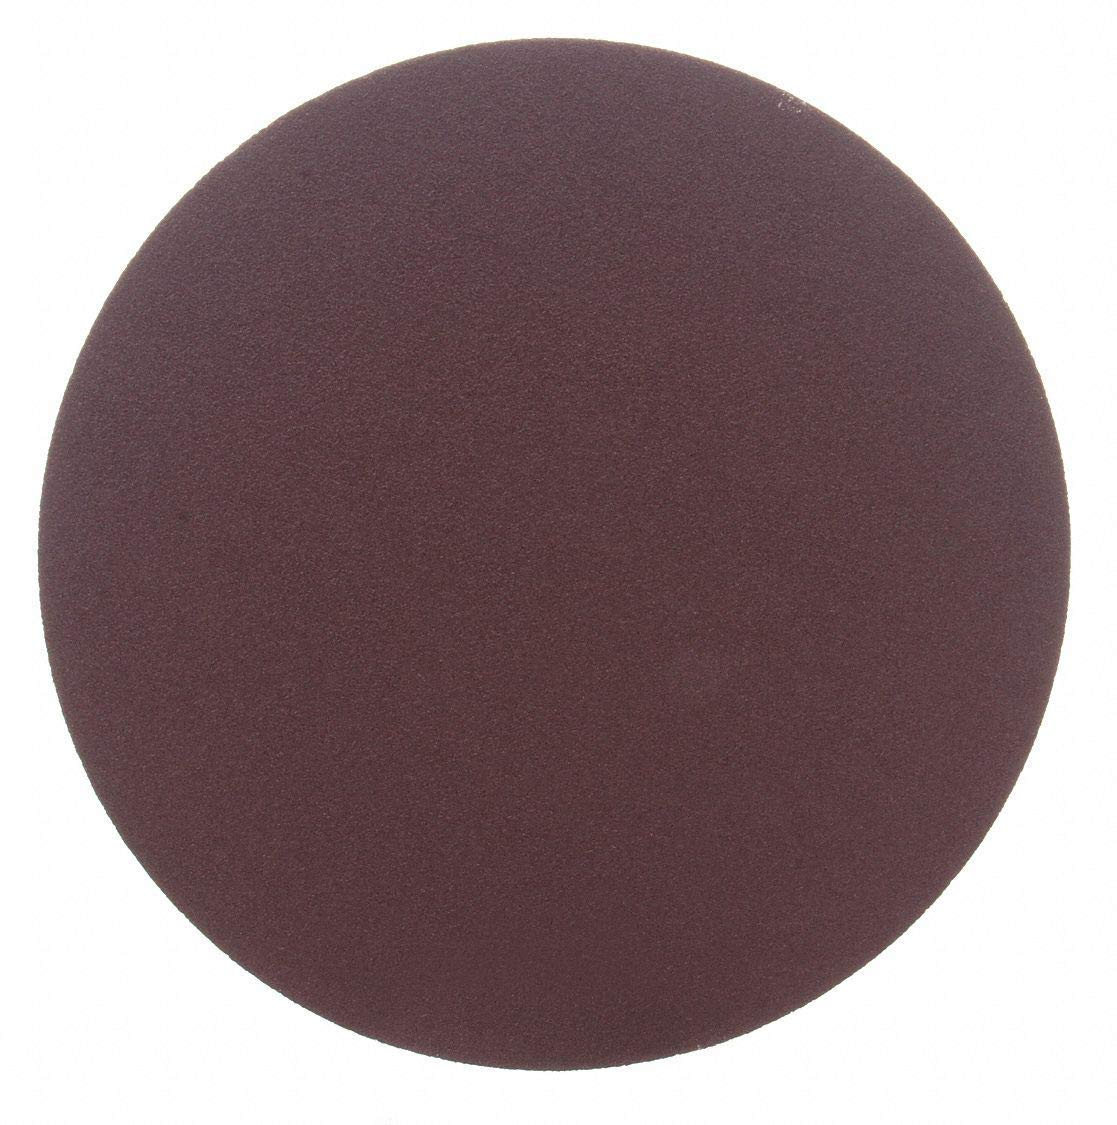 Level360 Sanding Disc 180 Grit for use with Radius360 sanding Tool or Drywall Power Sanding Tools SD180-5 8-3//4 Full Circle International Inc